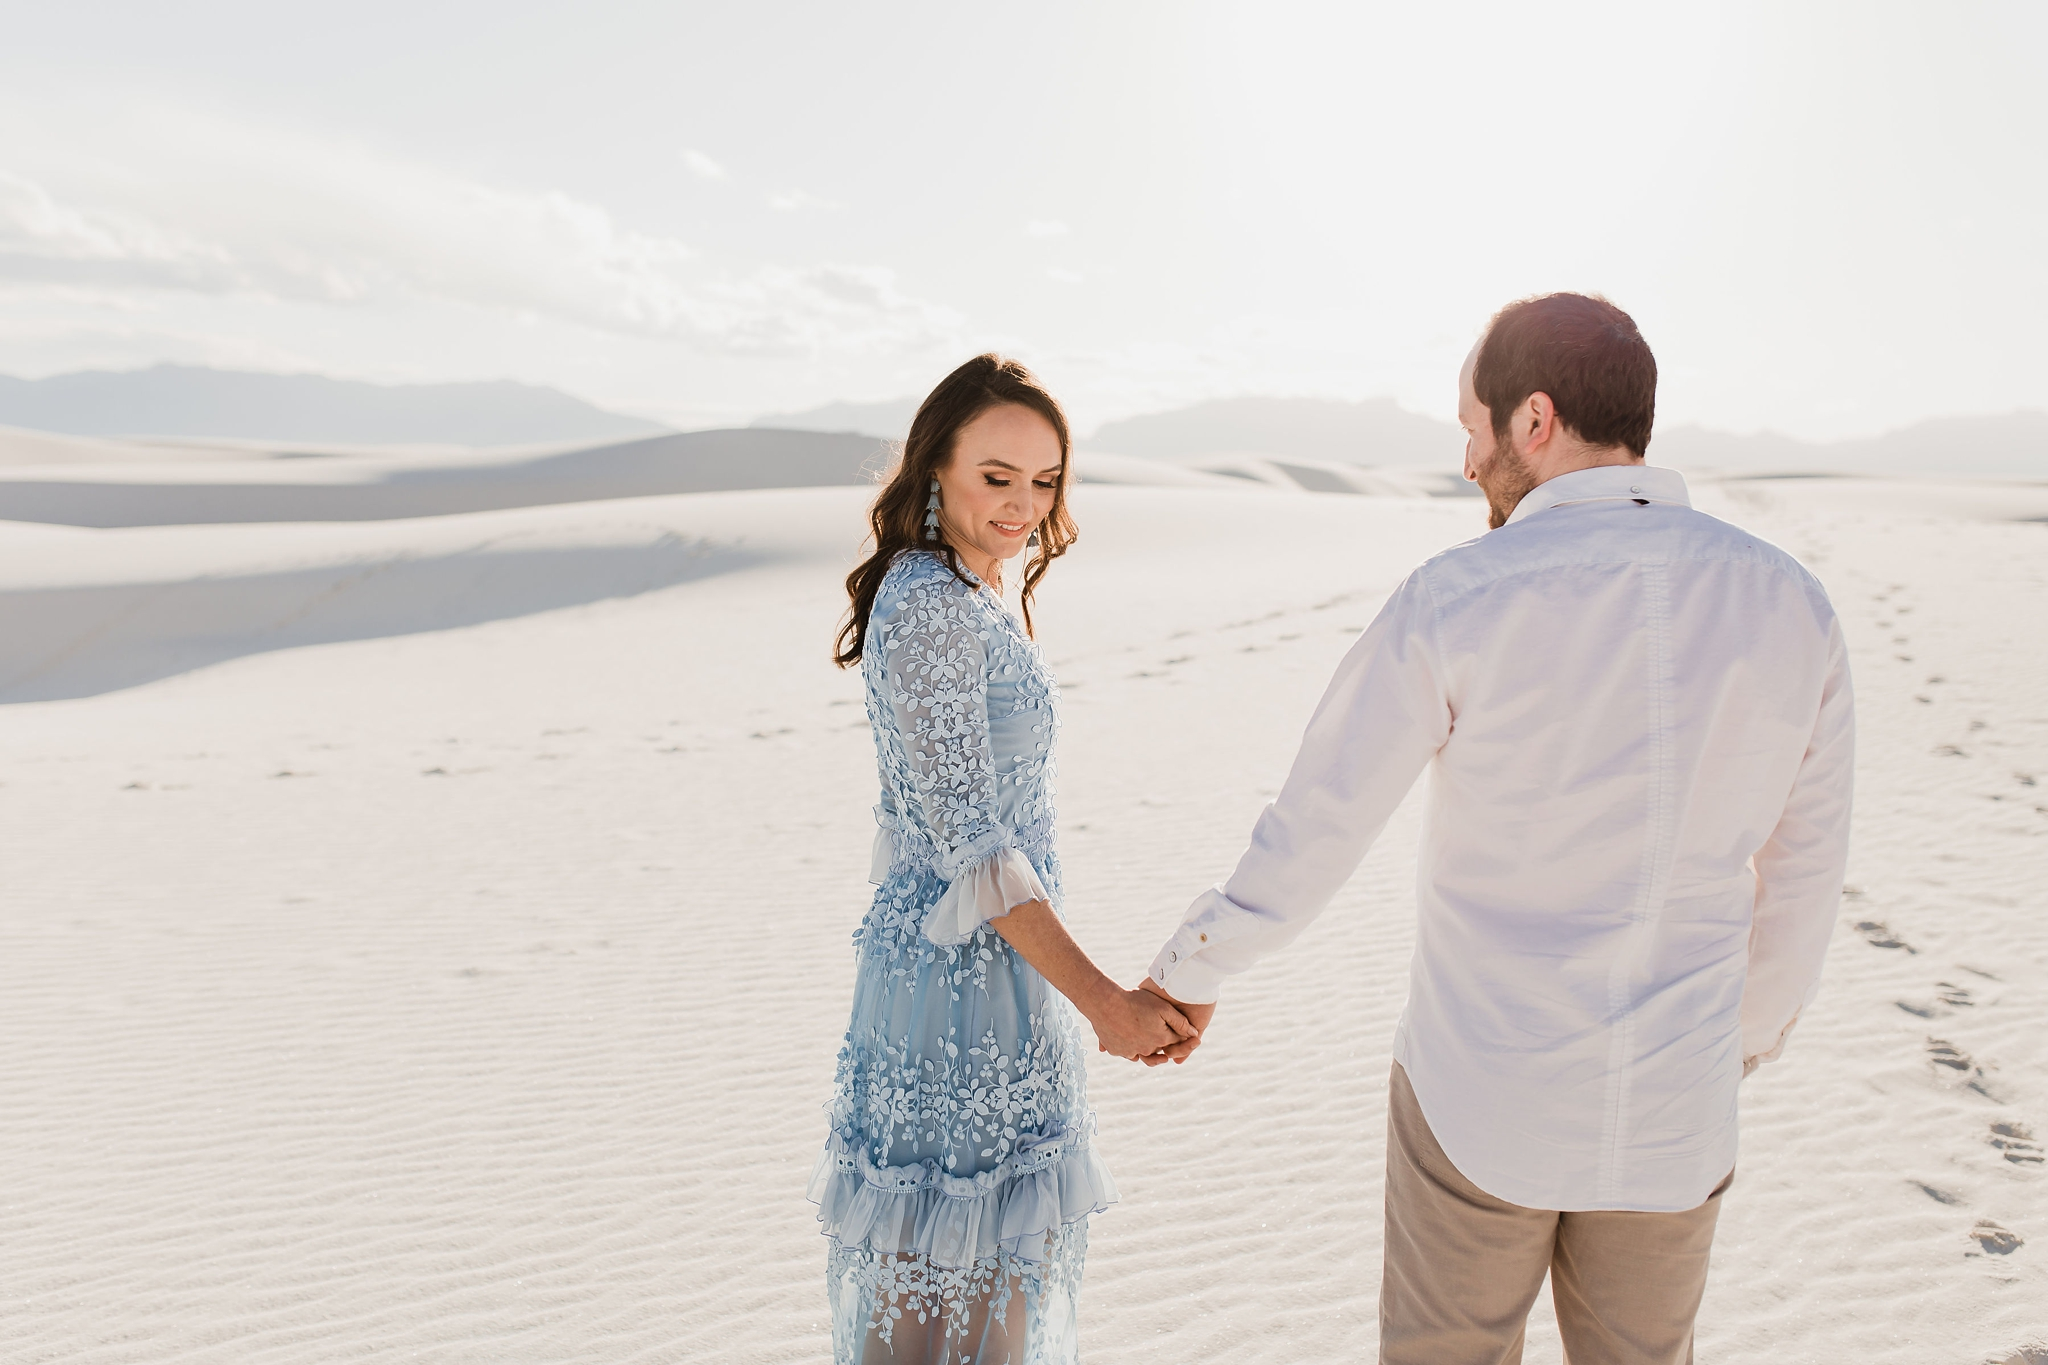 Alicia+lucia+photography+-+albuquerque+wedding+photographer+-+santa+fe+wedding+photography+-+new+mexico+wedding+photographer+-+new+mexico+wedding+-+new+mexico+engagement+-+white+sands+engagement+-+white+sands+national+monument_0011.jpg